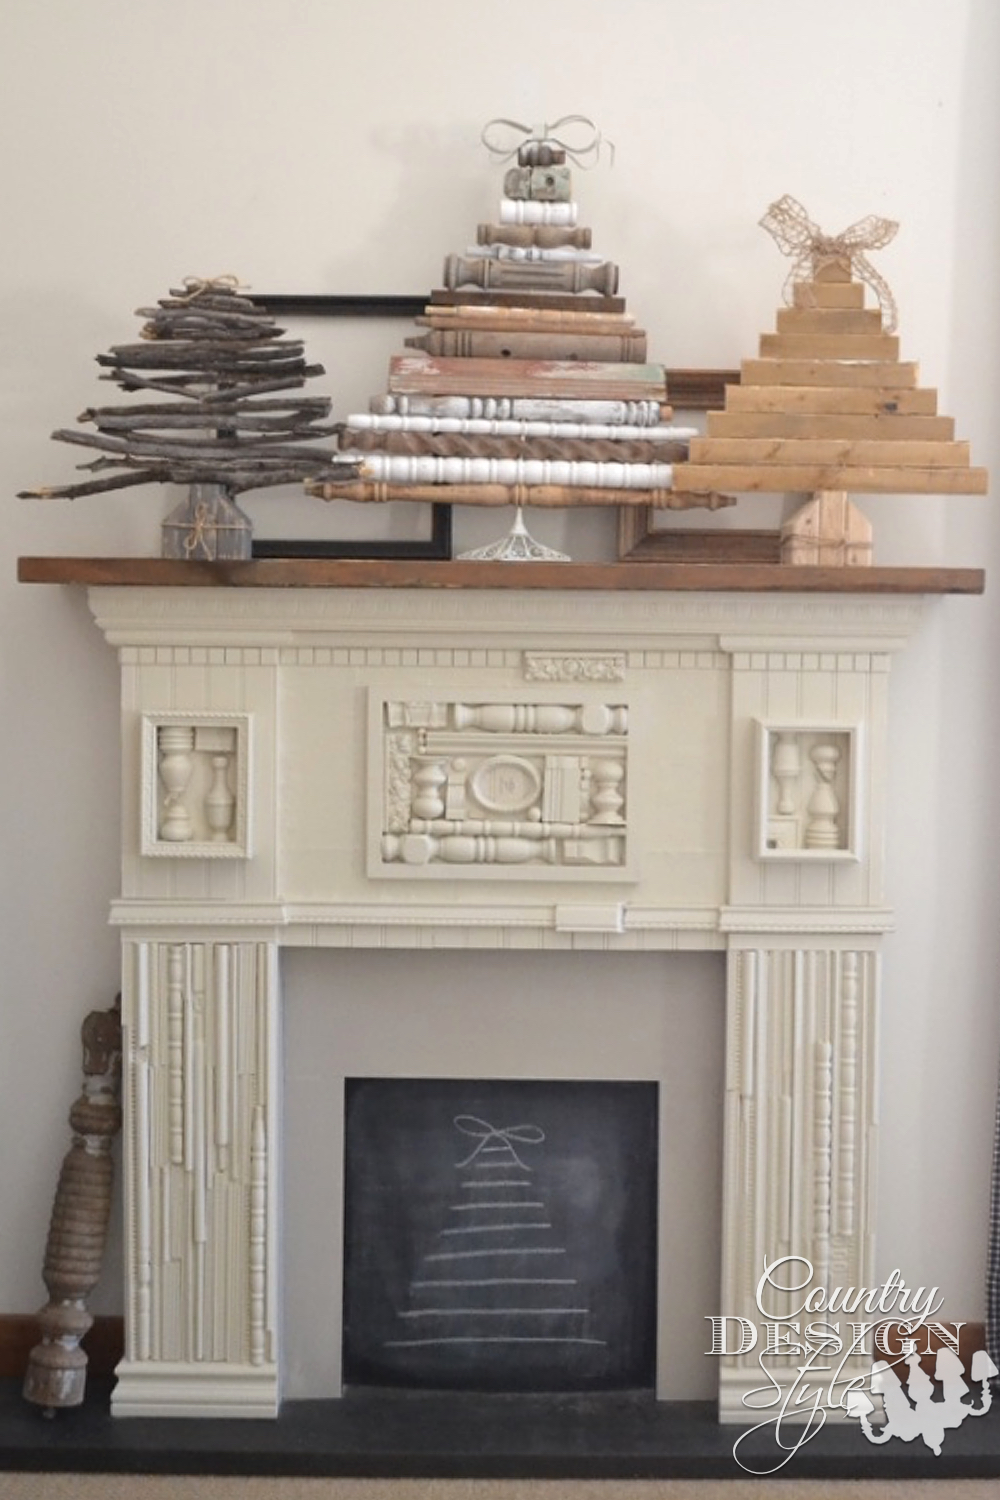 Scrap wood mantel with planked style Christmas tree even on the chalkboard firebox area. | countrydesignstyle.com